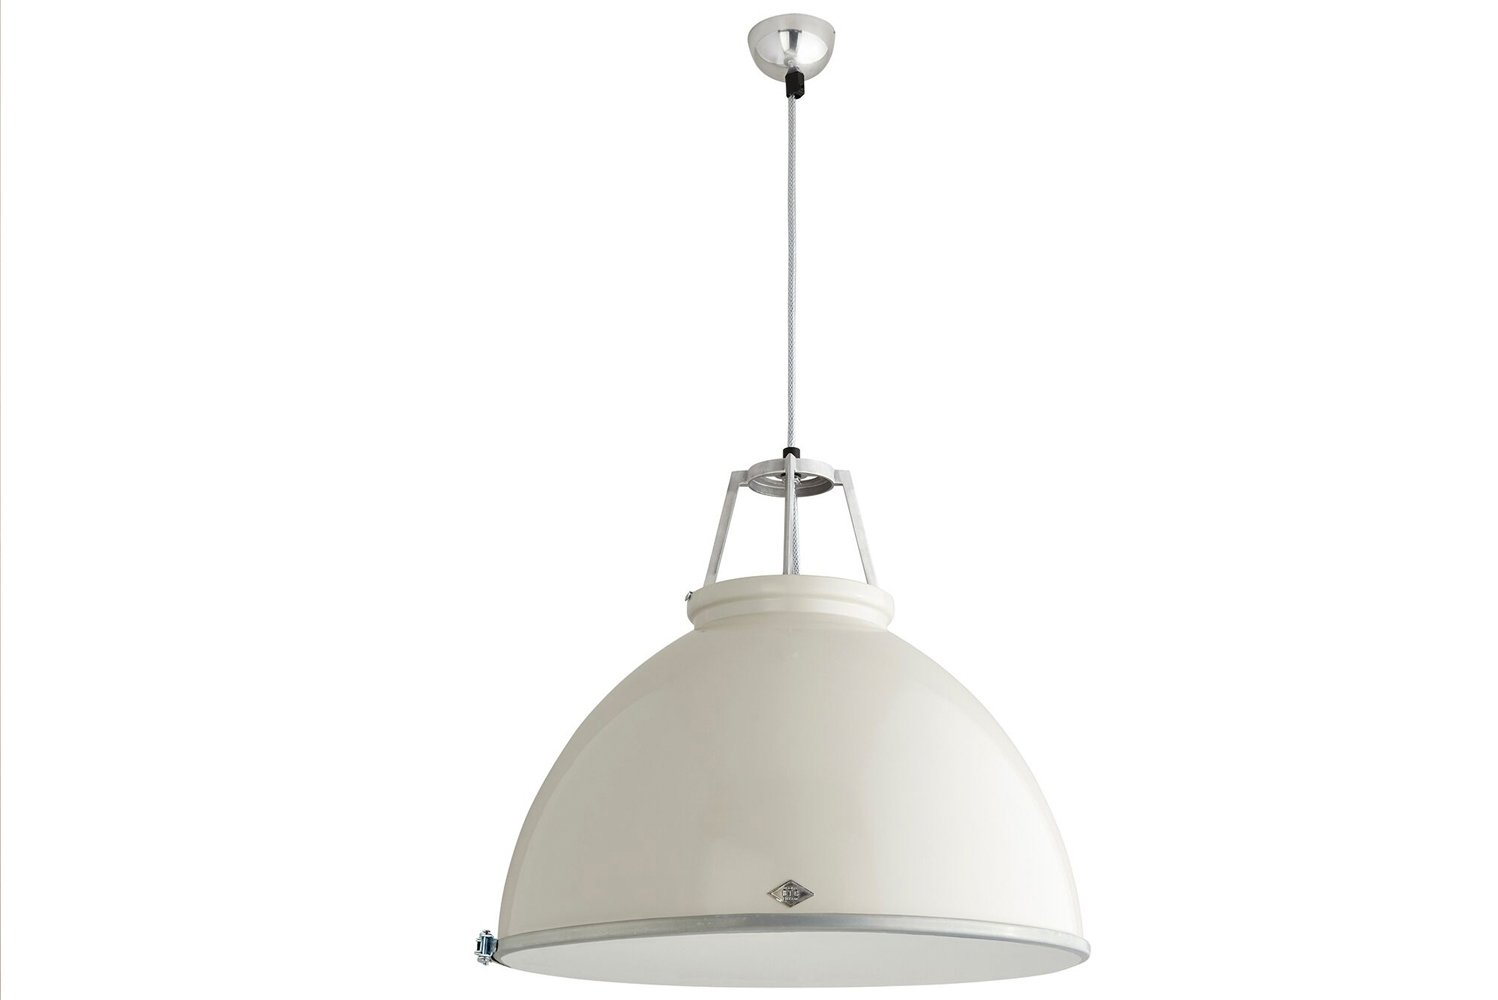 The hard shell of the pendant can be done up in a lightly polished, natural aluminum state, or be painted.